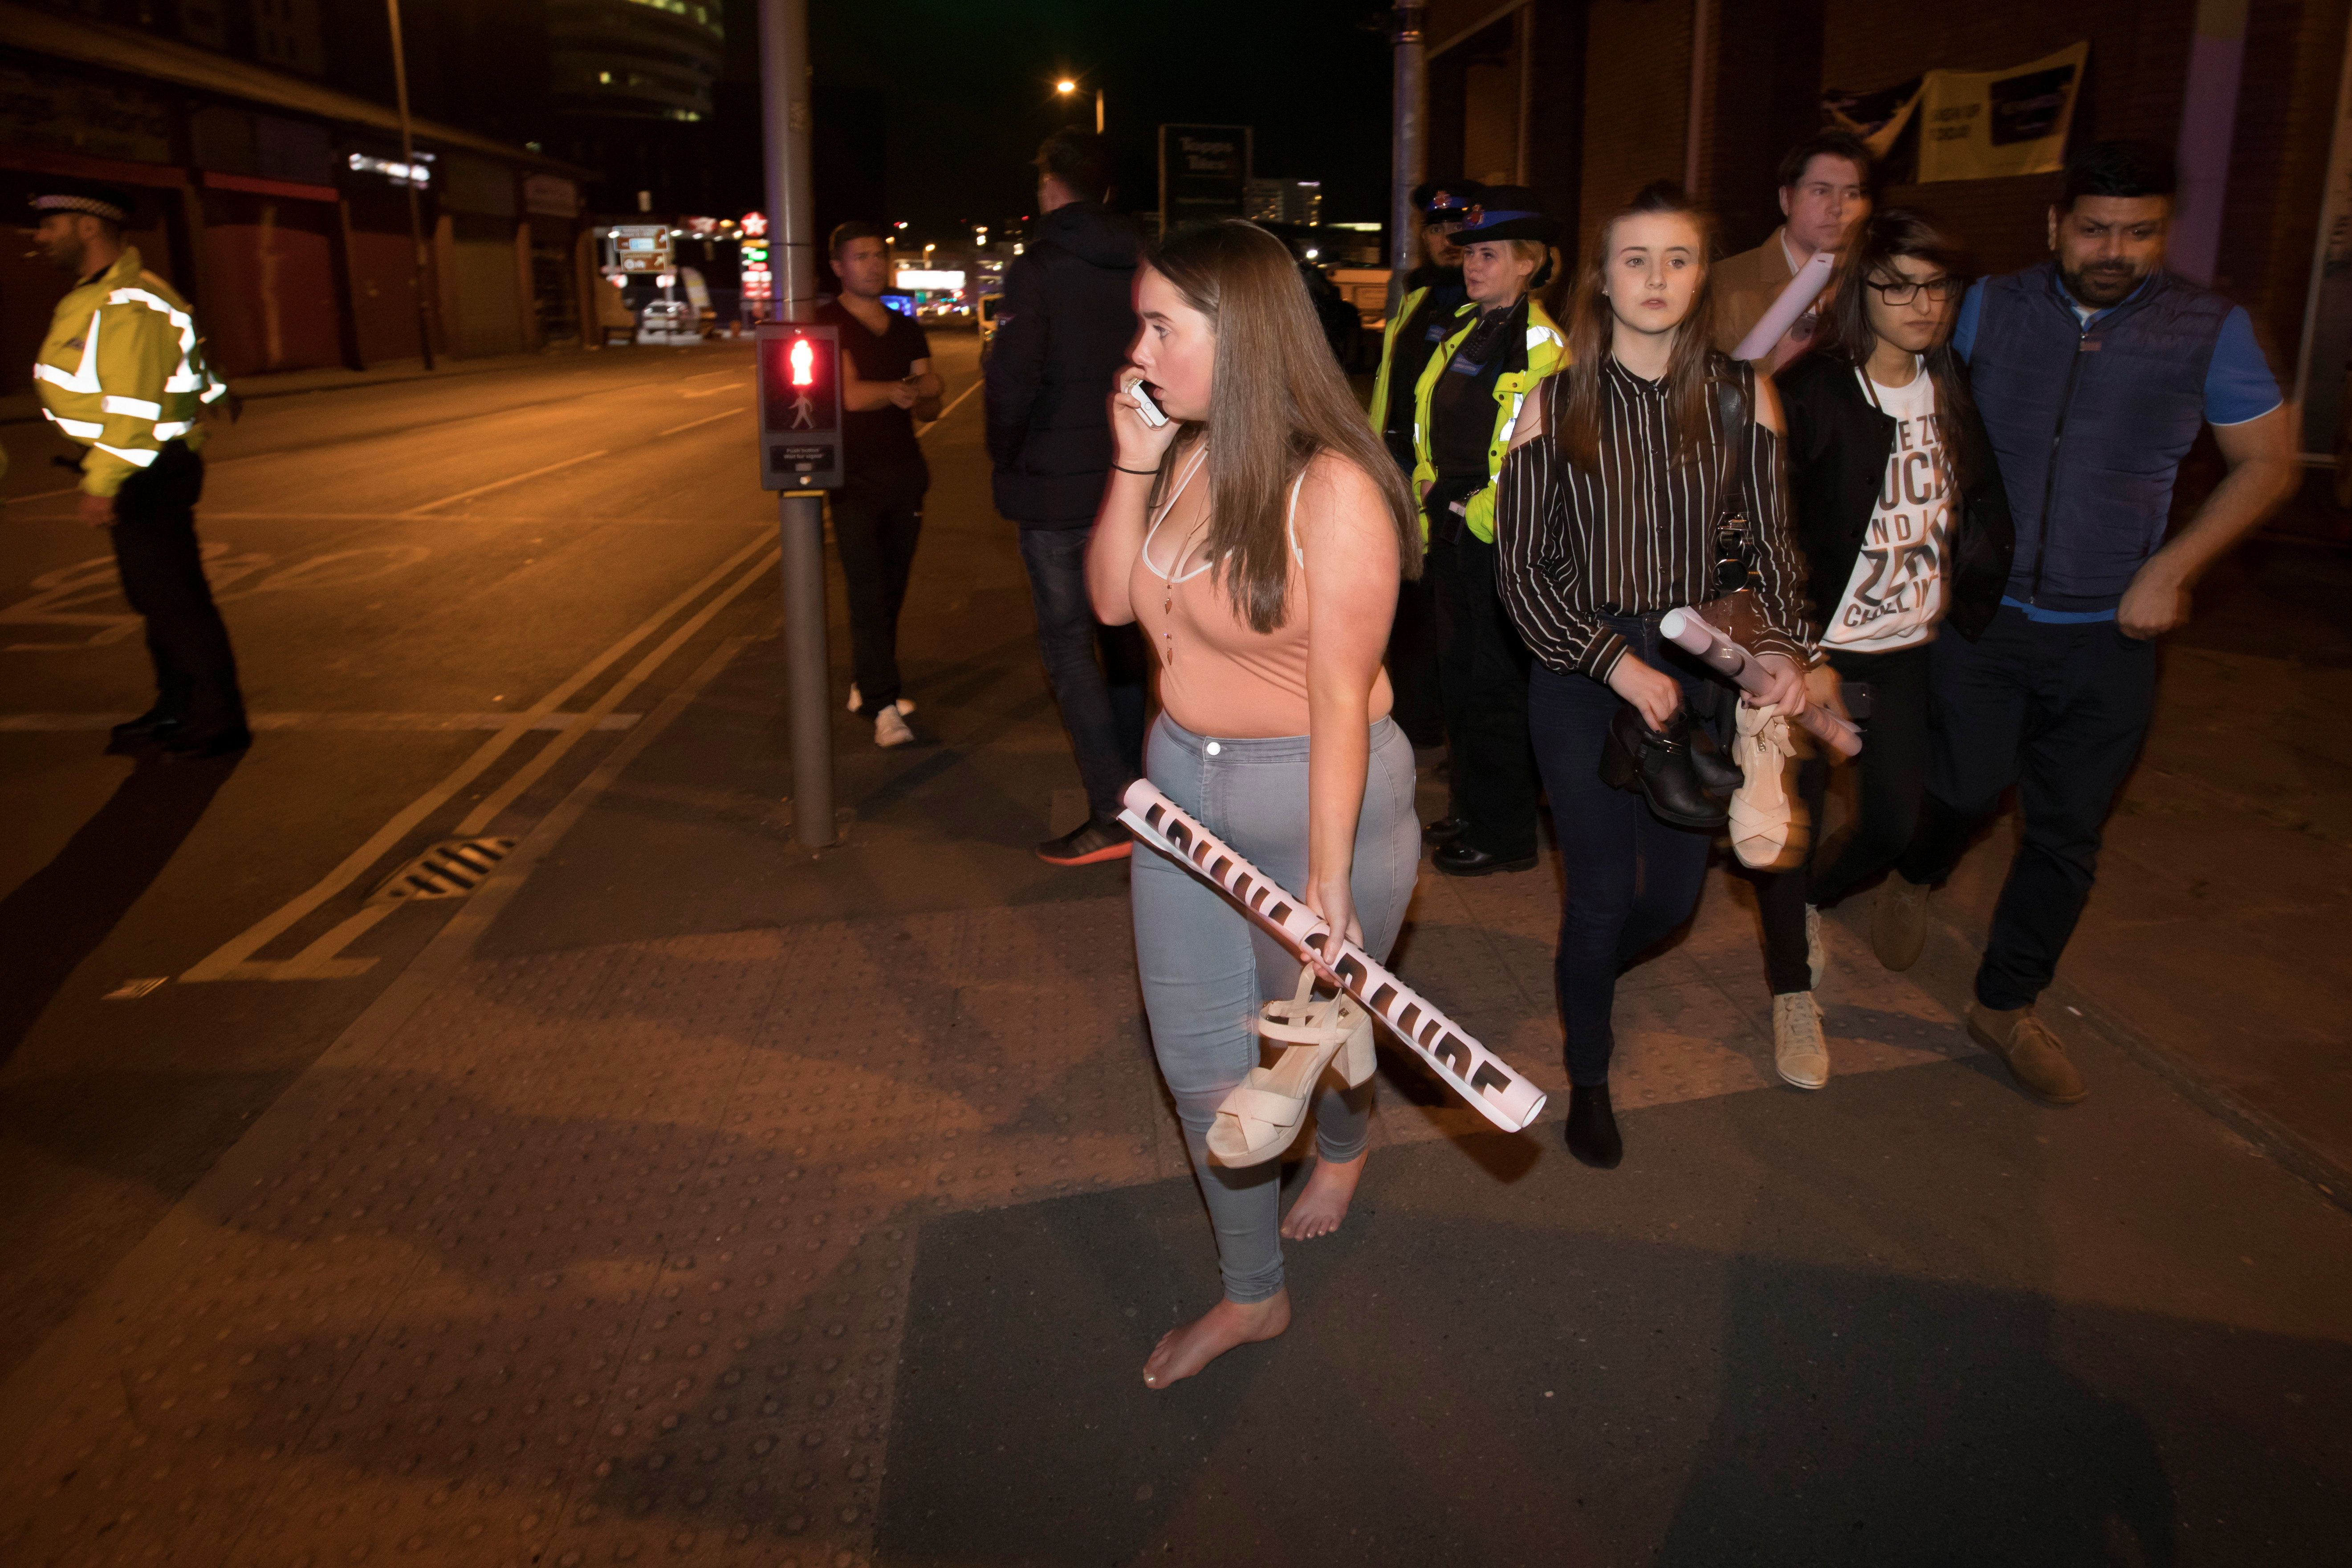 Manchester Attack: 22 Dead In Explosion During Ariana Grande